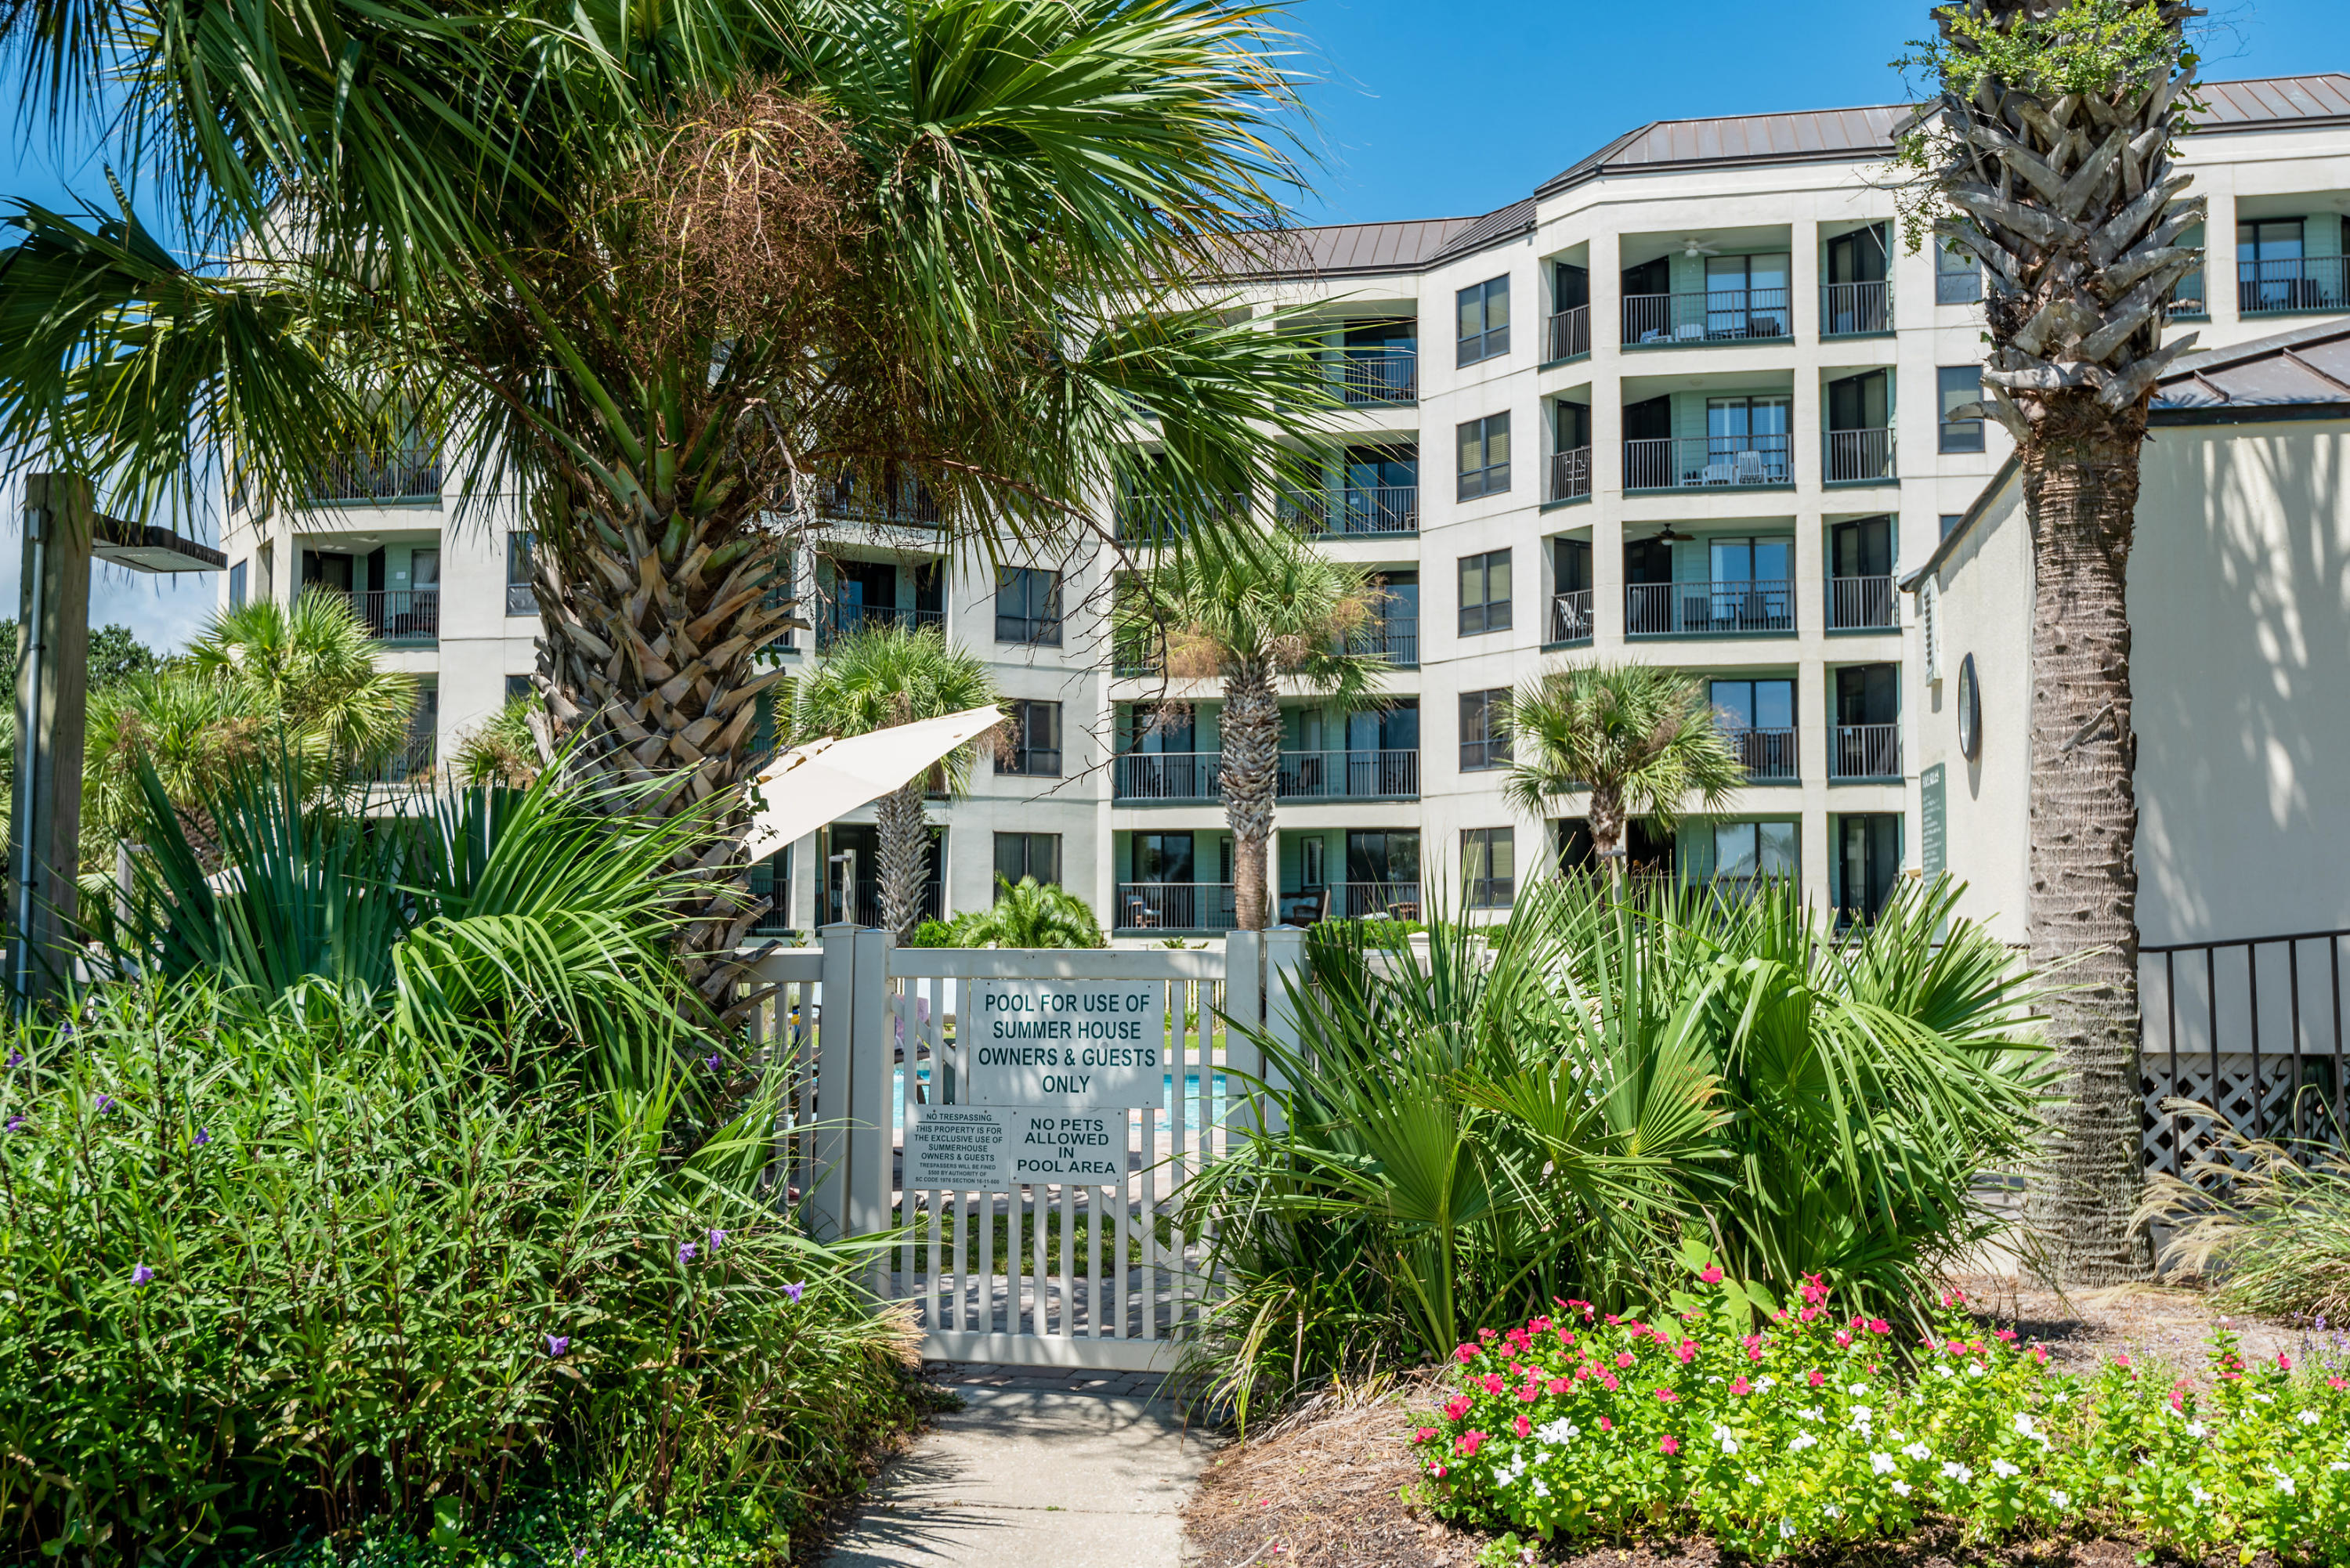 Summer House Homes For Sale - 308 Summerhouse, Isle of Palms, SC - 14